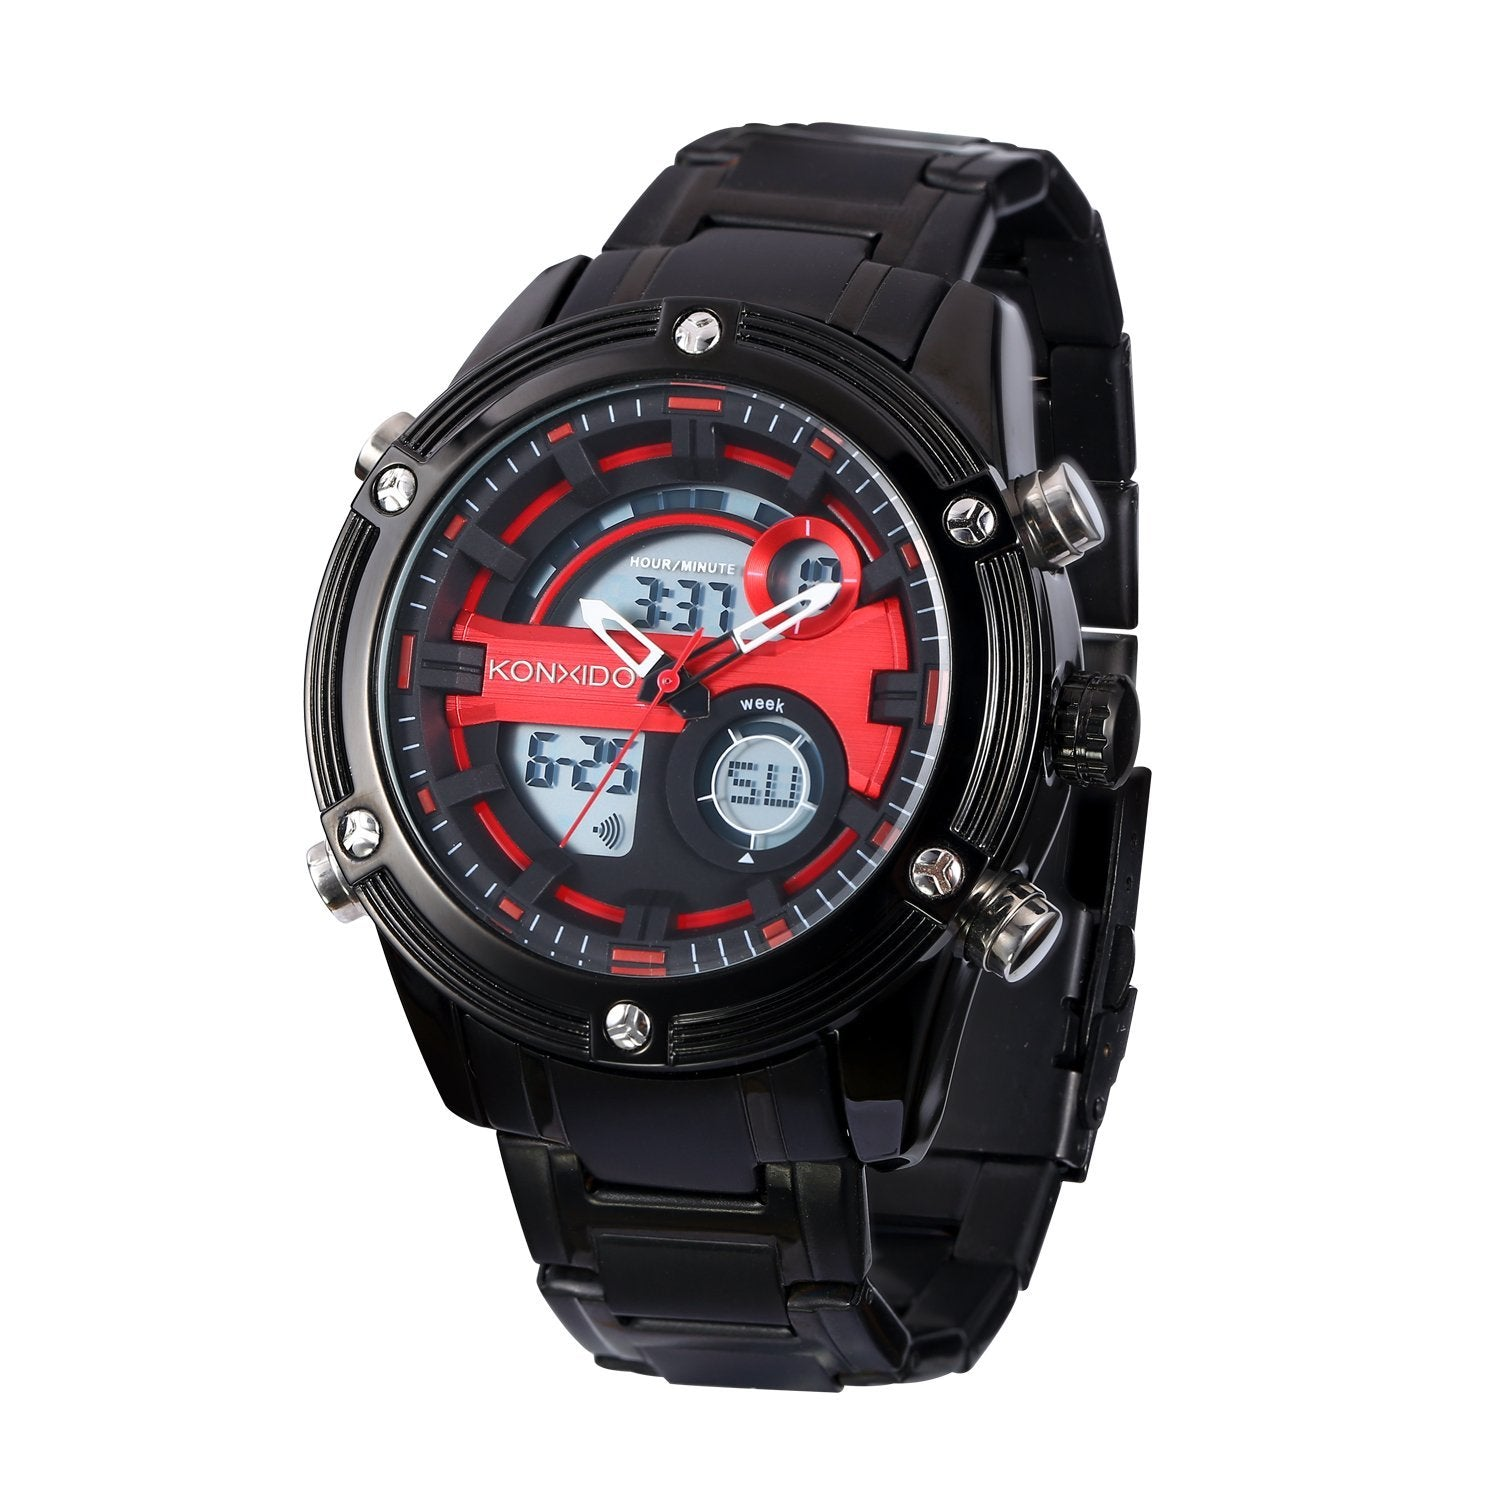 male watch products sports wrist quartz led luxury s digital brand military watches men readeel sport waterproof clock